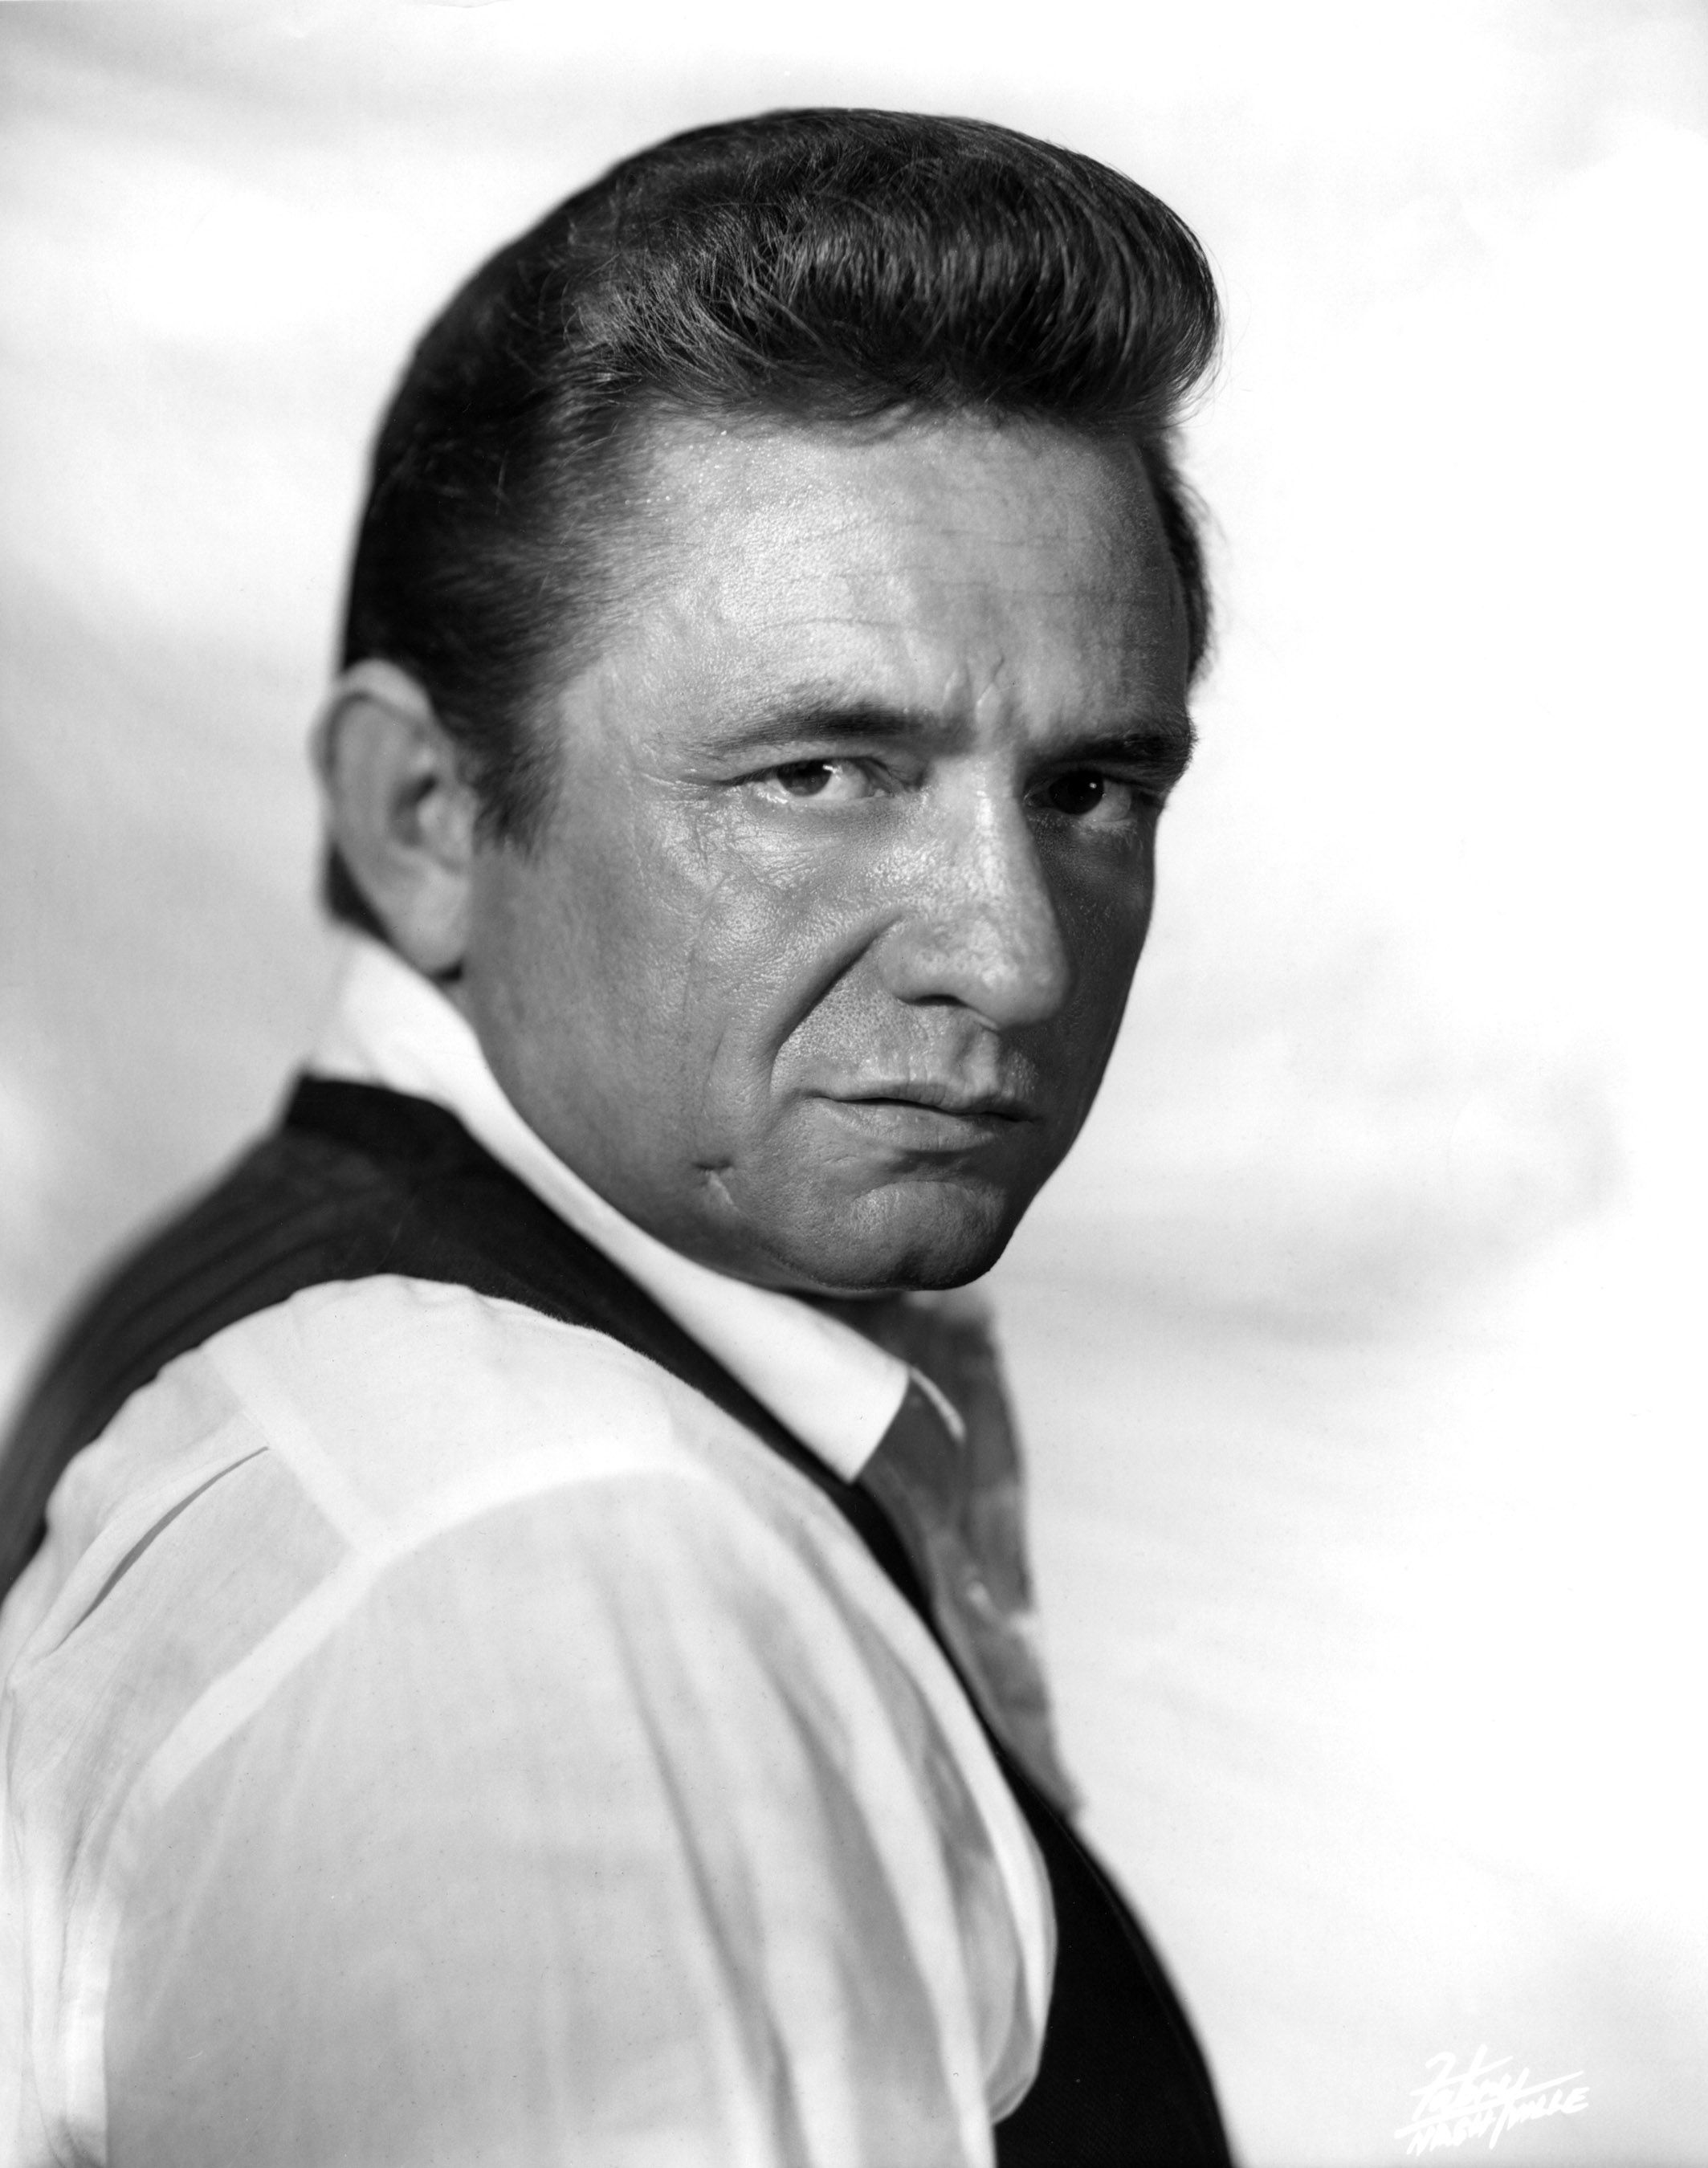 Johnny Cash Pool Song Johnny Cash Pictures Johnny Cash Photo Credit Courtesy Of The